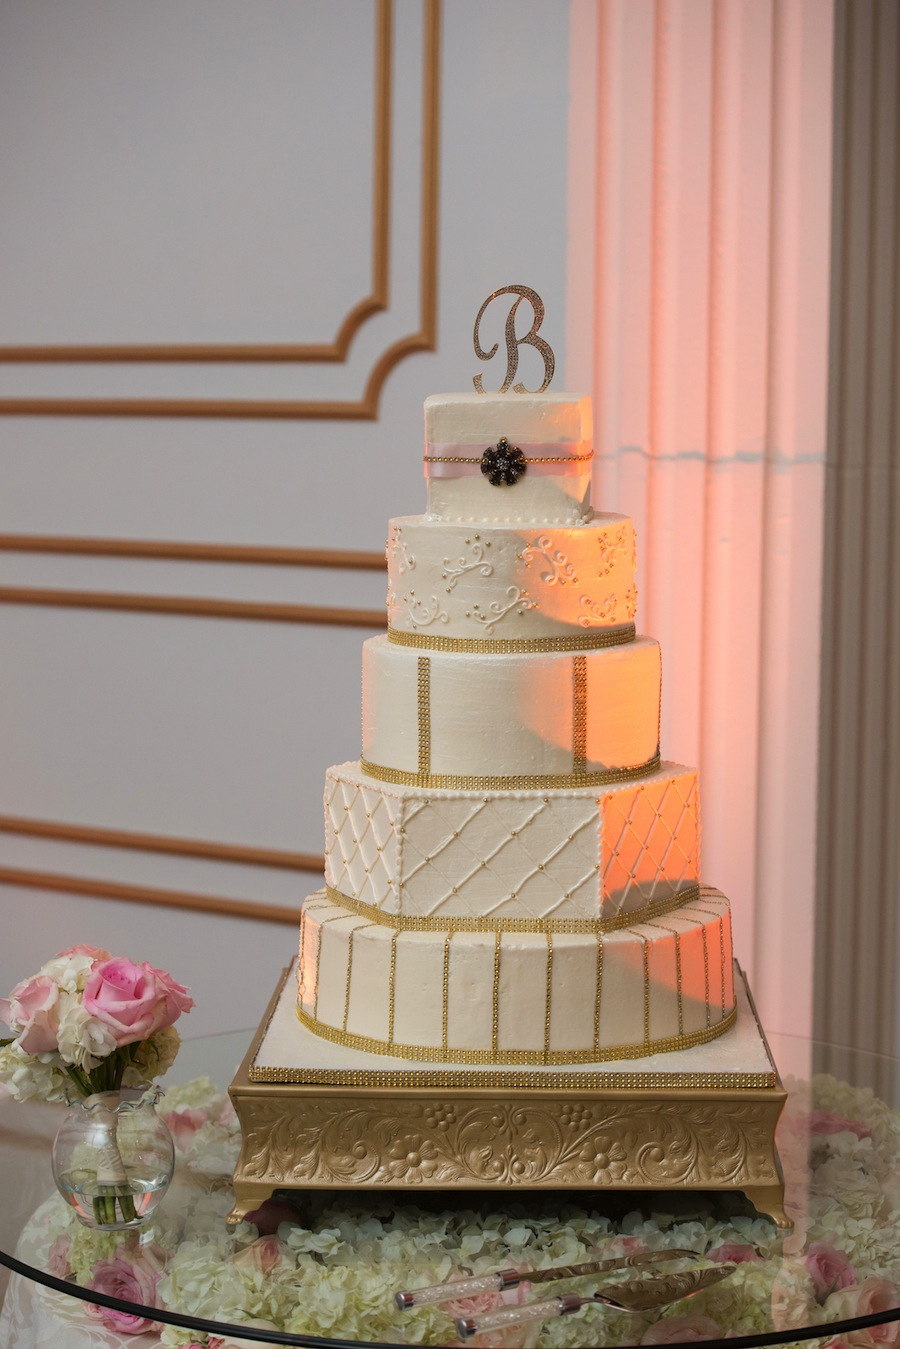 5-Tier Traditional Elegant Wedding Cake with Monogram Cake Topper at Floridan Palace Wedding Venue | Wedding Flowers by Northside Florist